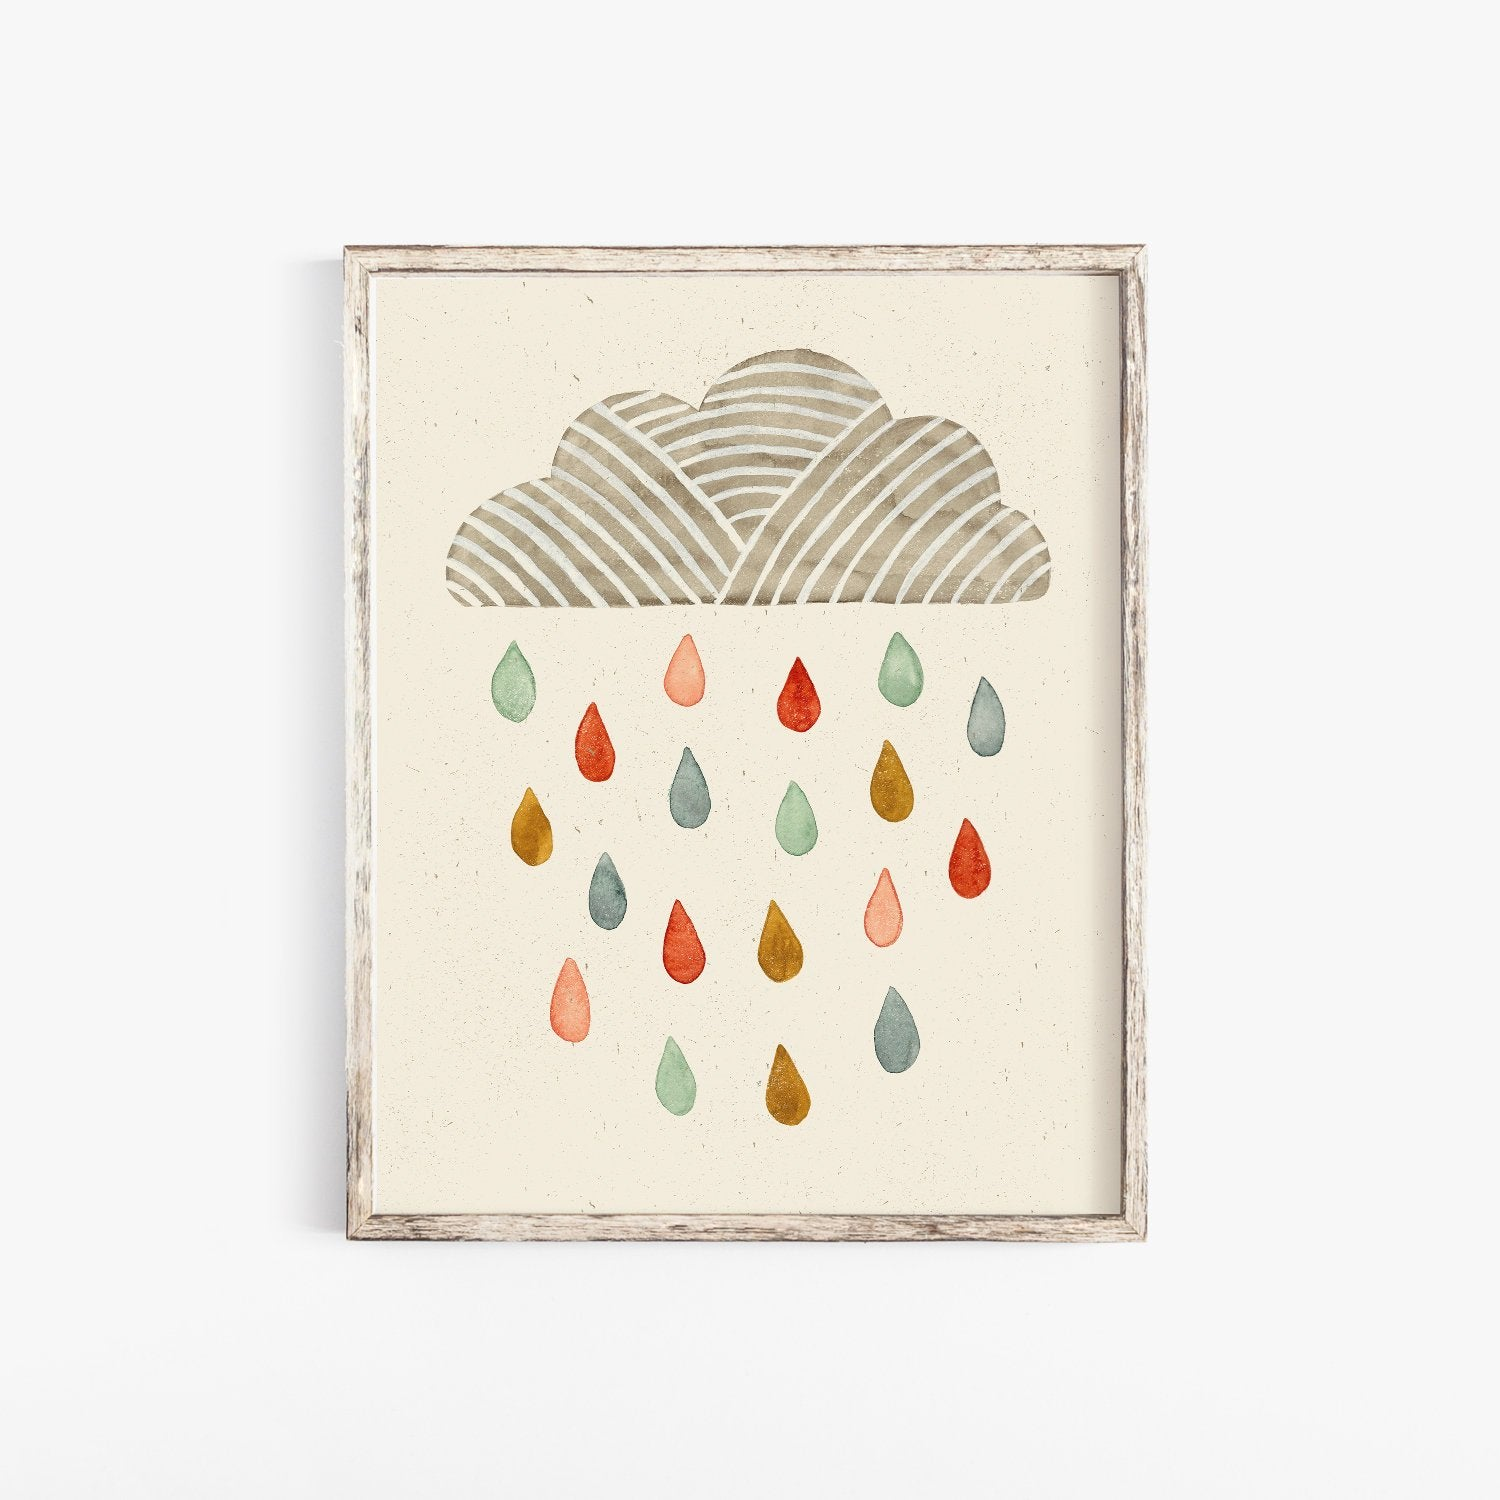 Rain Cloud Wall Art Print | Kids Wall Art | Watercolor Art Print | Minimalist Art | Nature Wall Art | Rain Cloud Art Print |  5x7 8x10 11x14